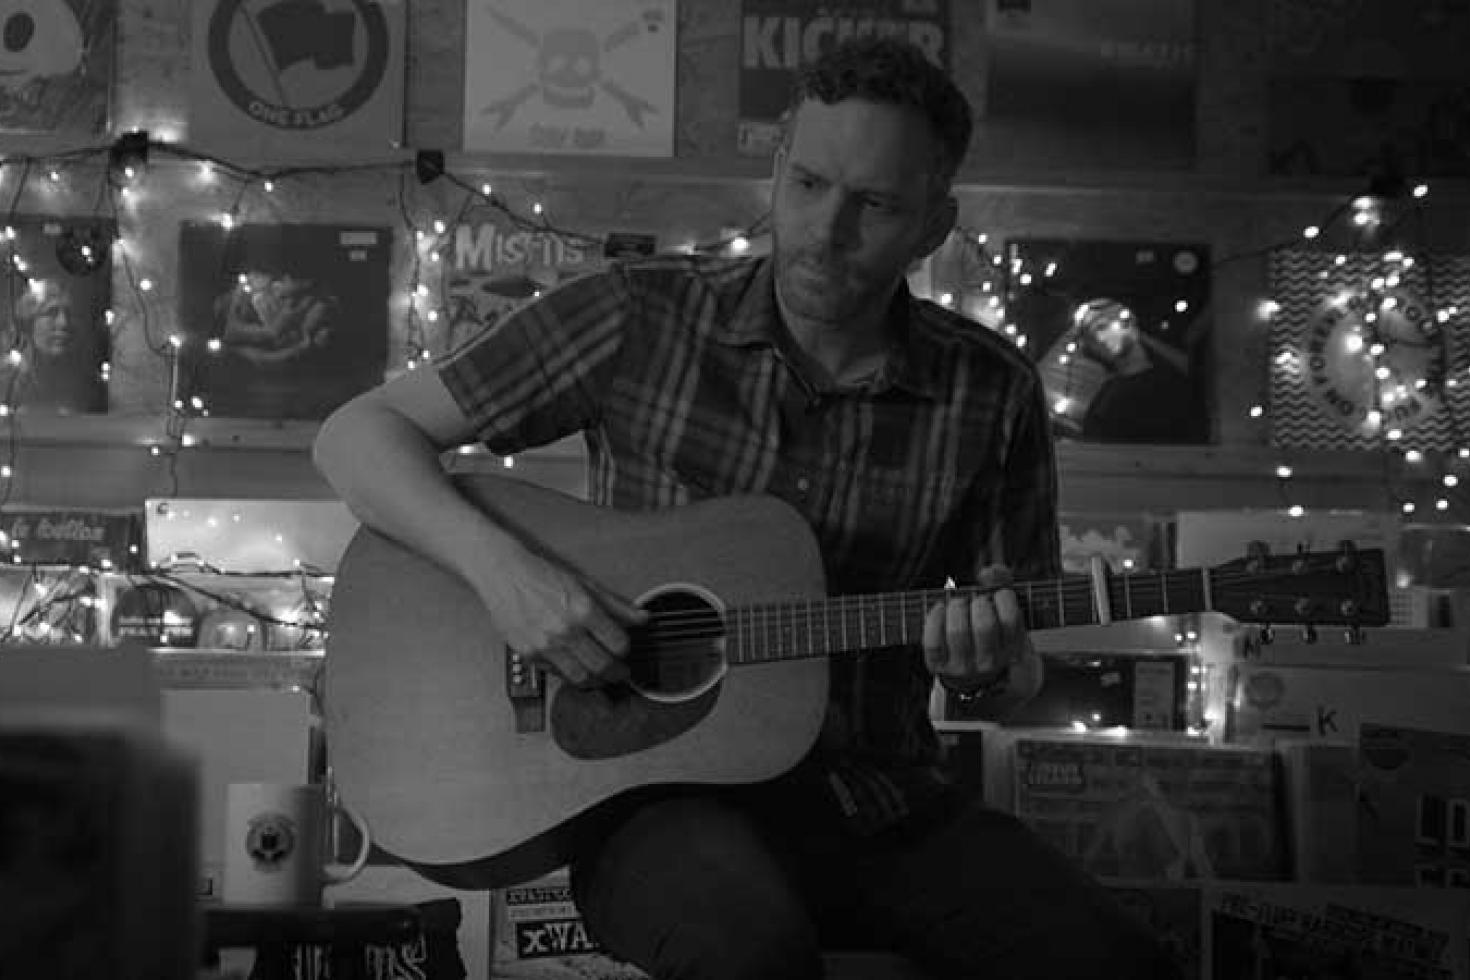 Bob Nanna releases new single 'Do You Want To Buy A Guitar?'